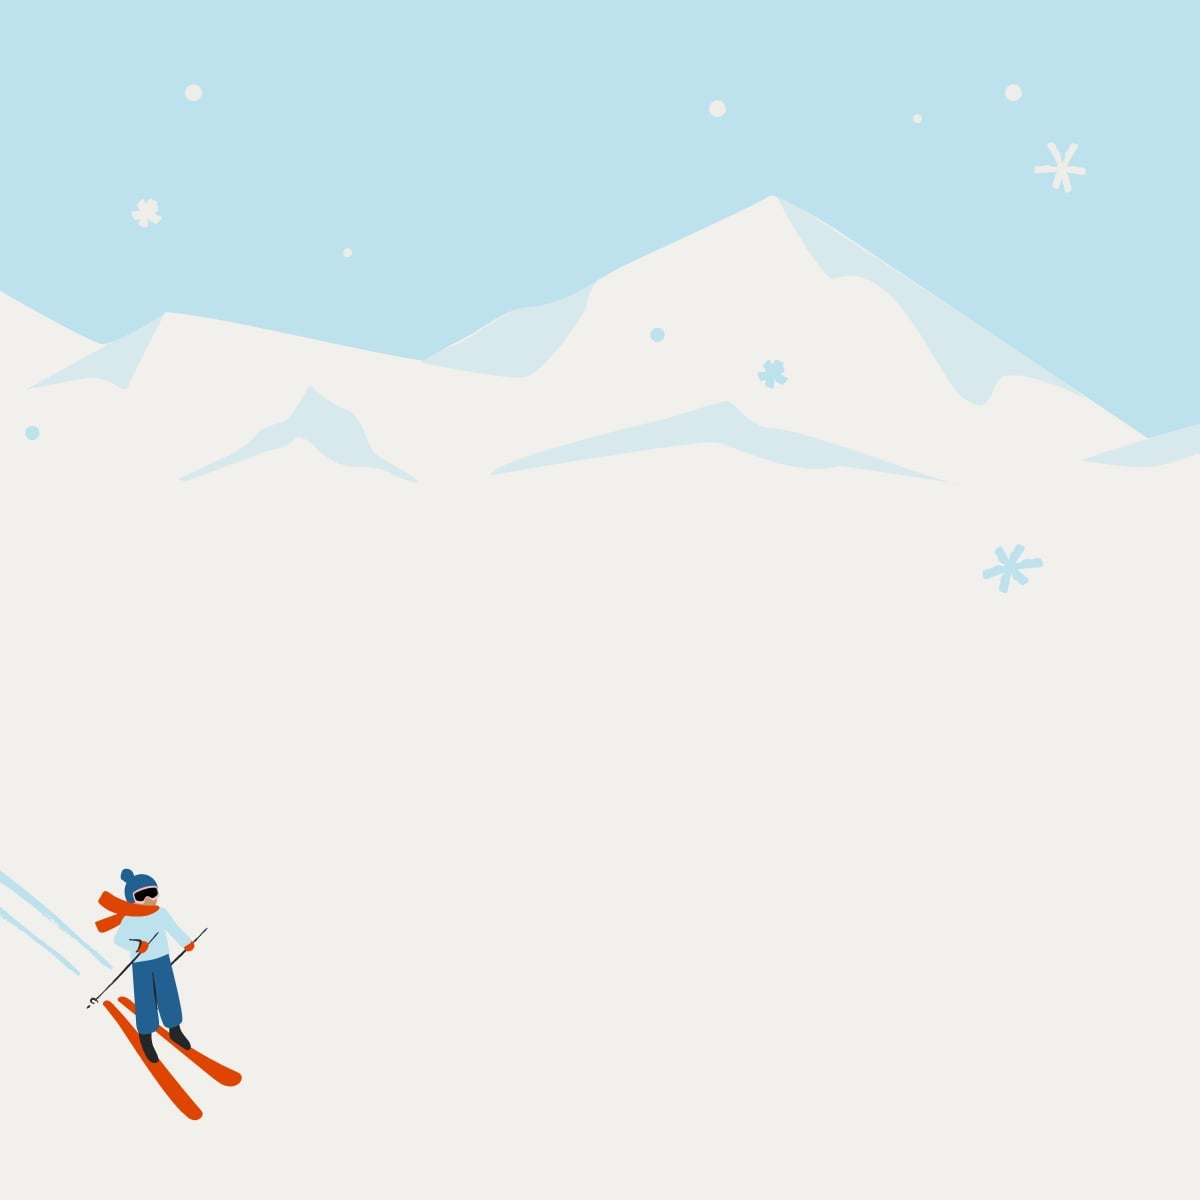 blue background with trees, snow, santa, and a reindeer